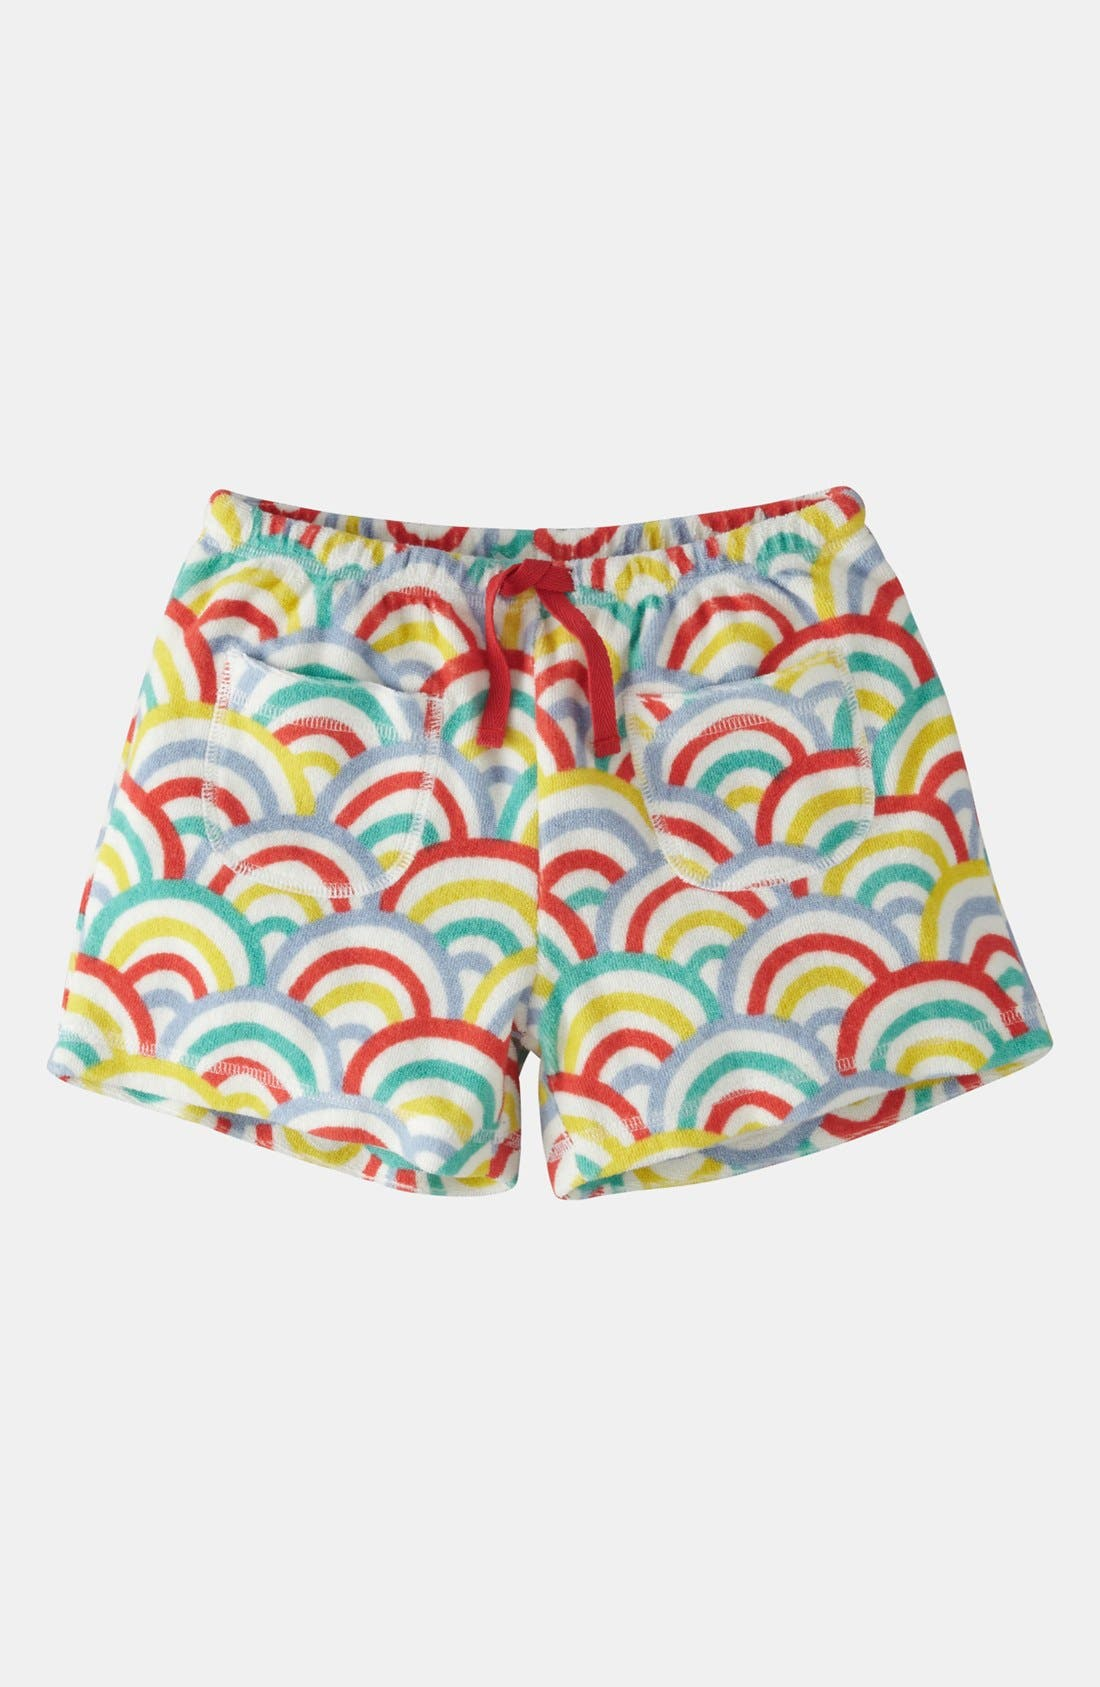 Main Image - Mini Boden 'Towelling' Shorts (Toddler)